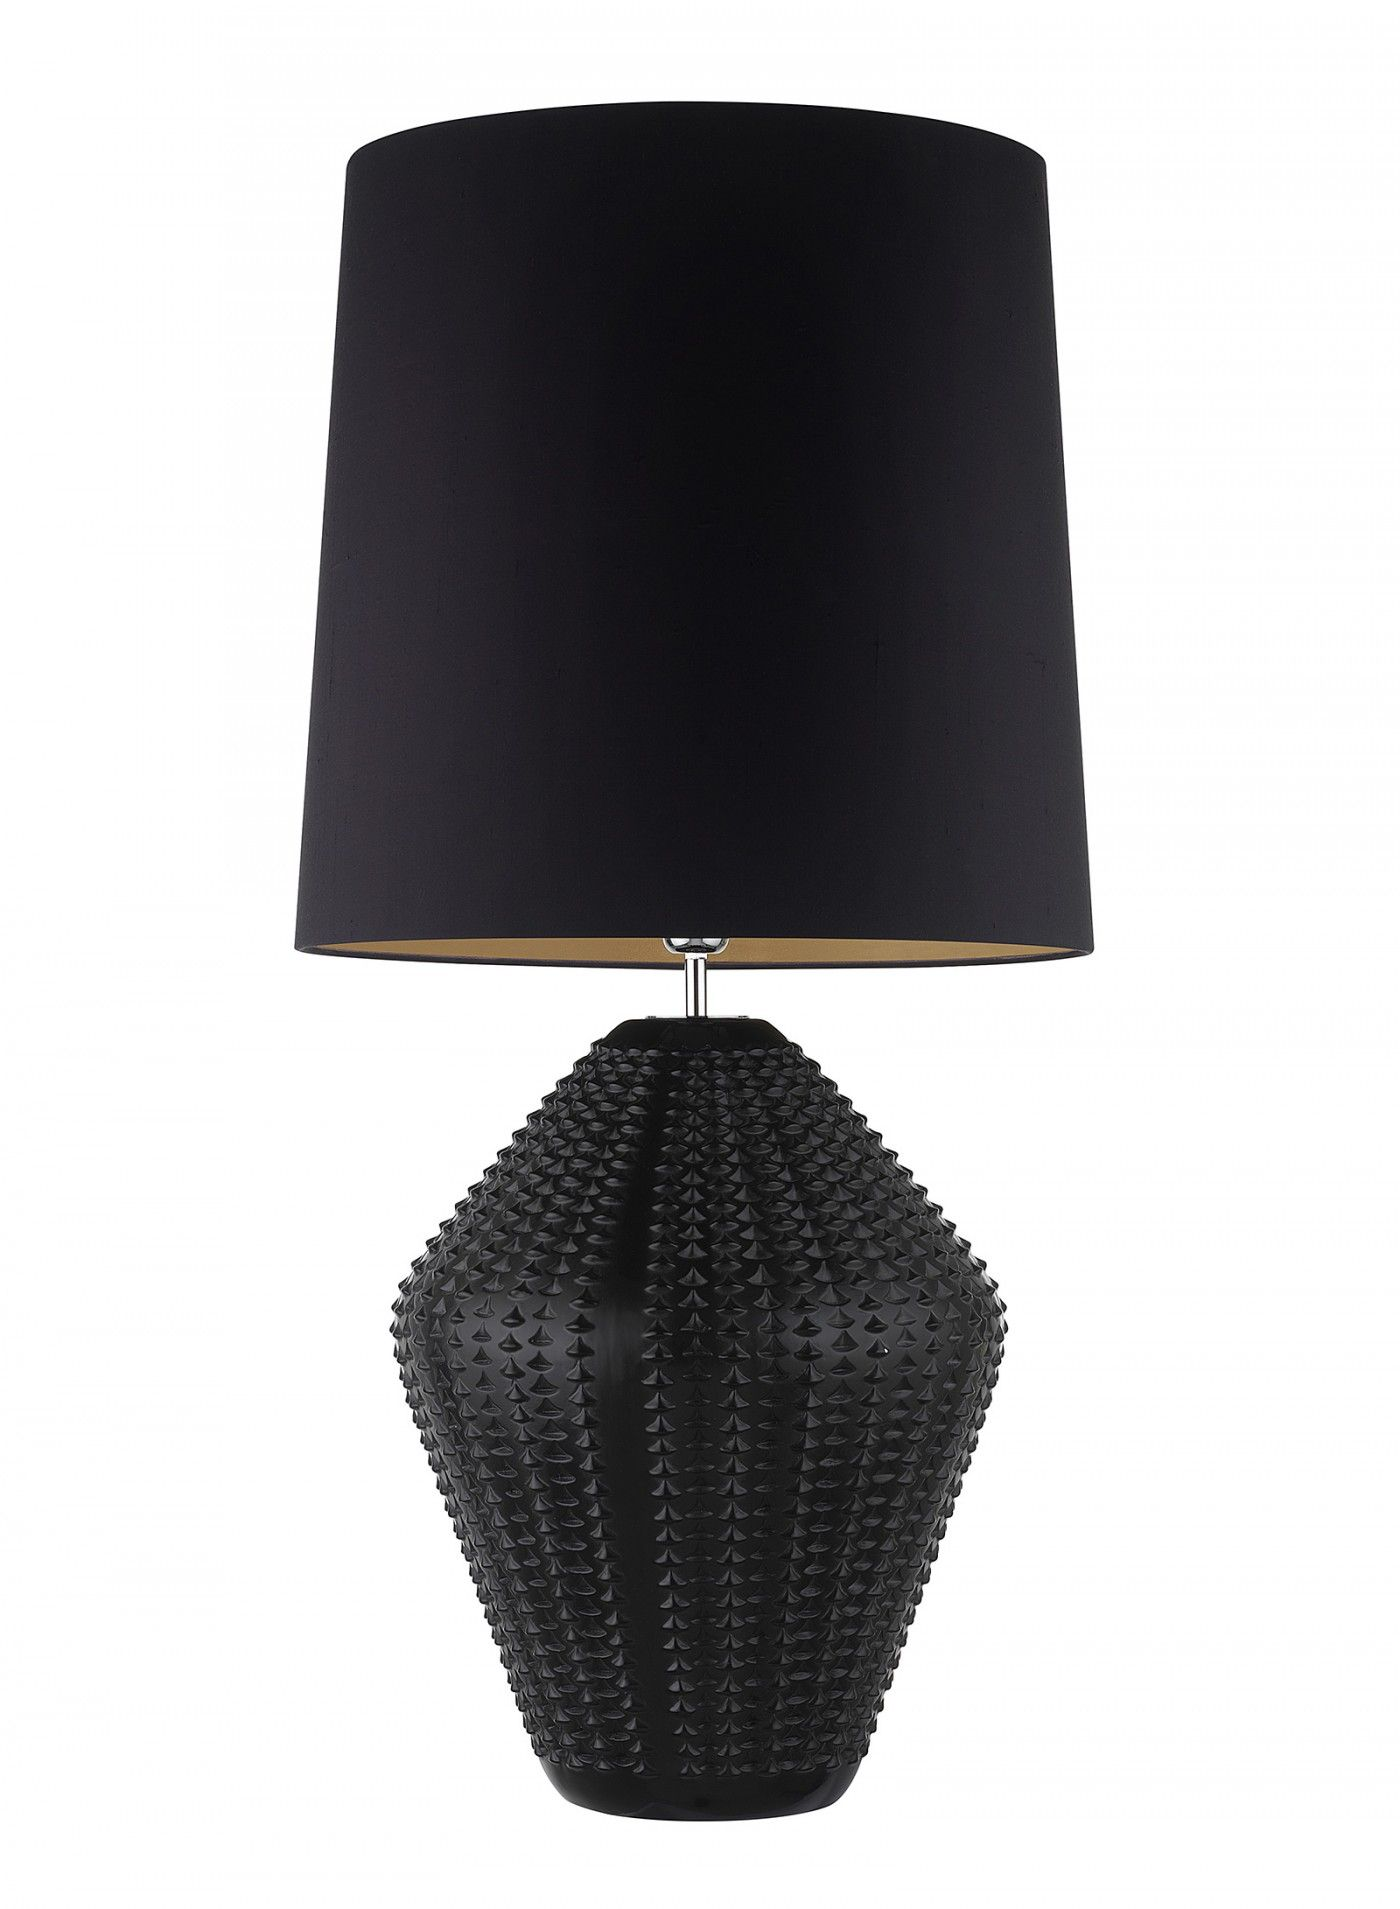 Hericus Antique Ebony Classic Table Lamp Black Table Lamps Contemporary Lamp Shades